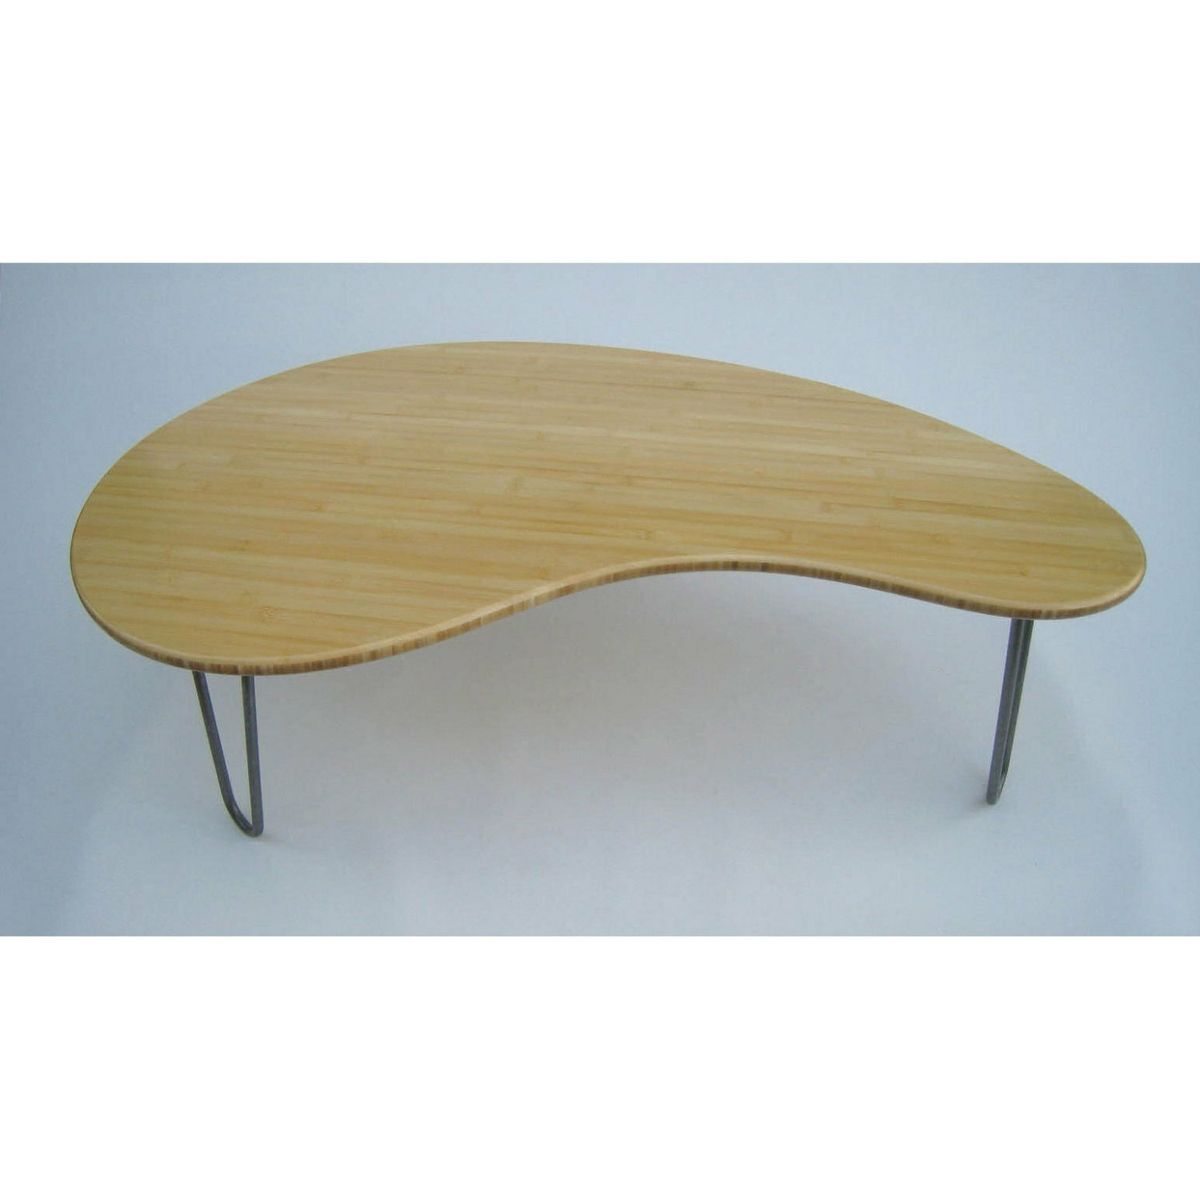 Custom Made Kidney Bean Shaped Coffee Table Mid Century Modern Atomic Era Design In